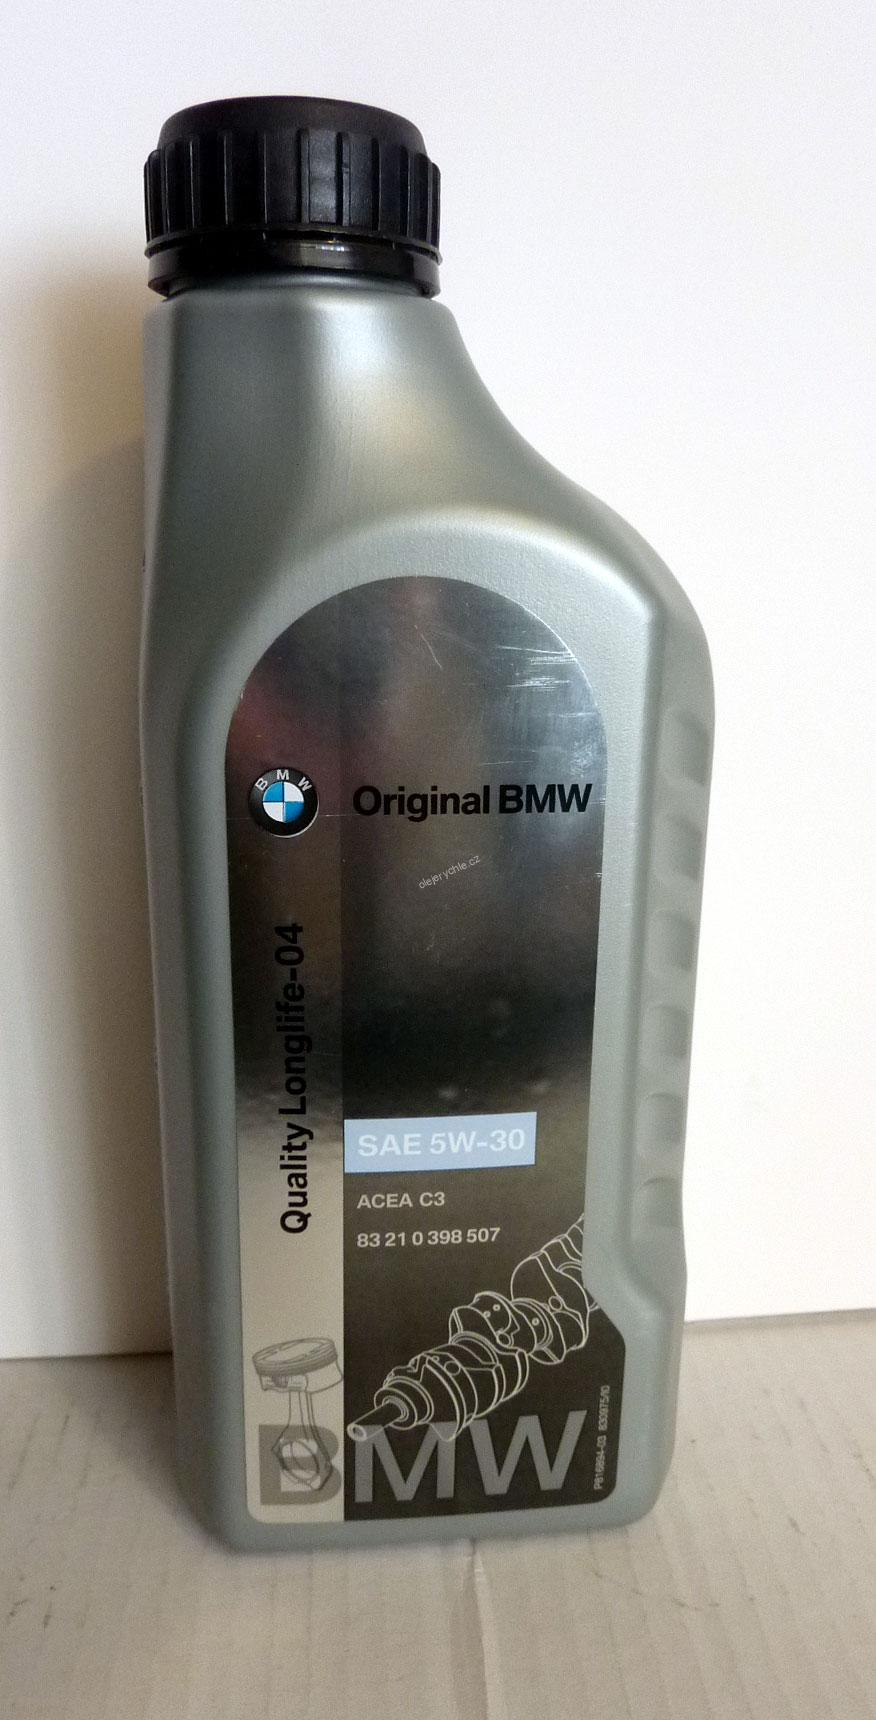 BMW Original Longlife-04 1 lt